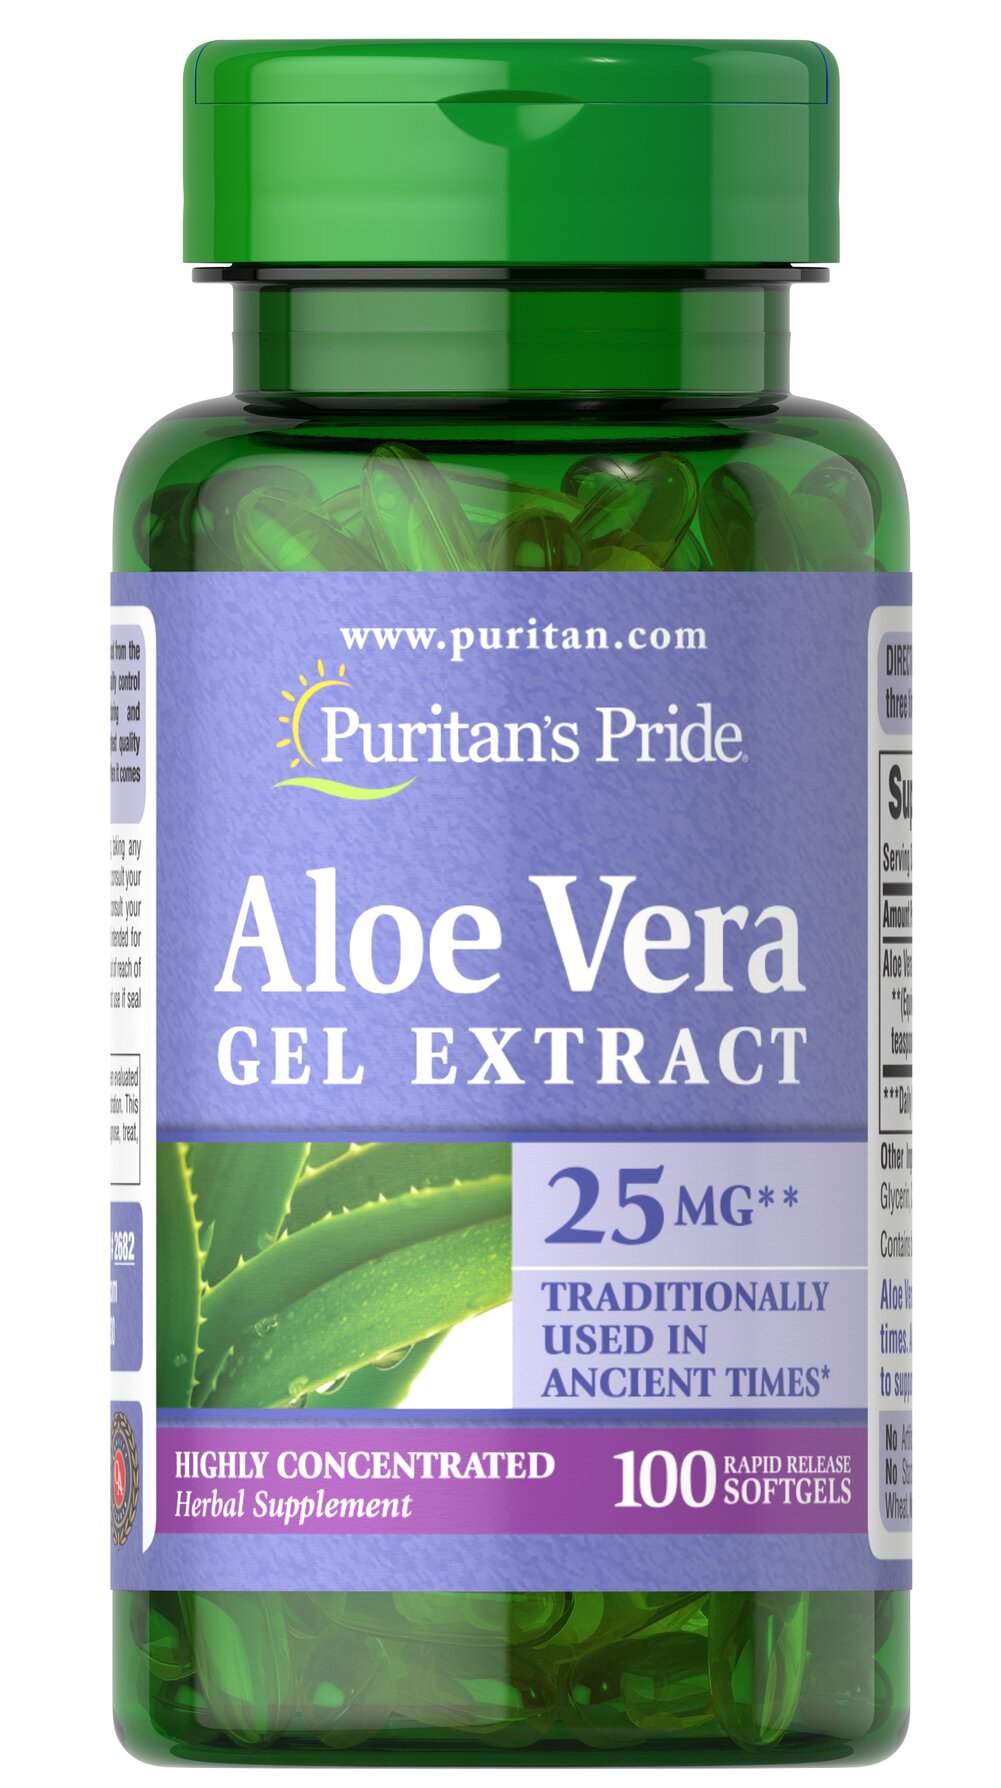 Aloe Vera Extract 25 mg <p>Serves as an aid for healthy digestion**</p><p>Plays a role in the well-being of the body**</p><p>Convenience of capsules, softgels and liquids is unsurpassed</p><p>Has been used and trusted for centuries. **</p><p>Aloe Vera contains a vast array of vitamins, minerals, amino acids, polysaccharides and phenolic compounds, and has been shown to support a healthy digestive system.**</p> 100 Softgels 25 mg $10.29